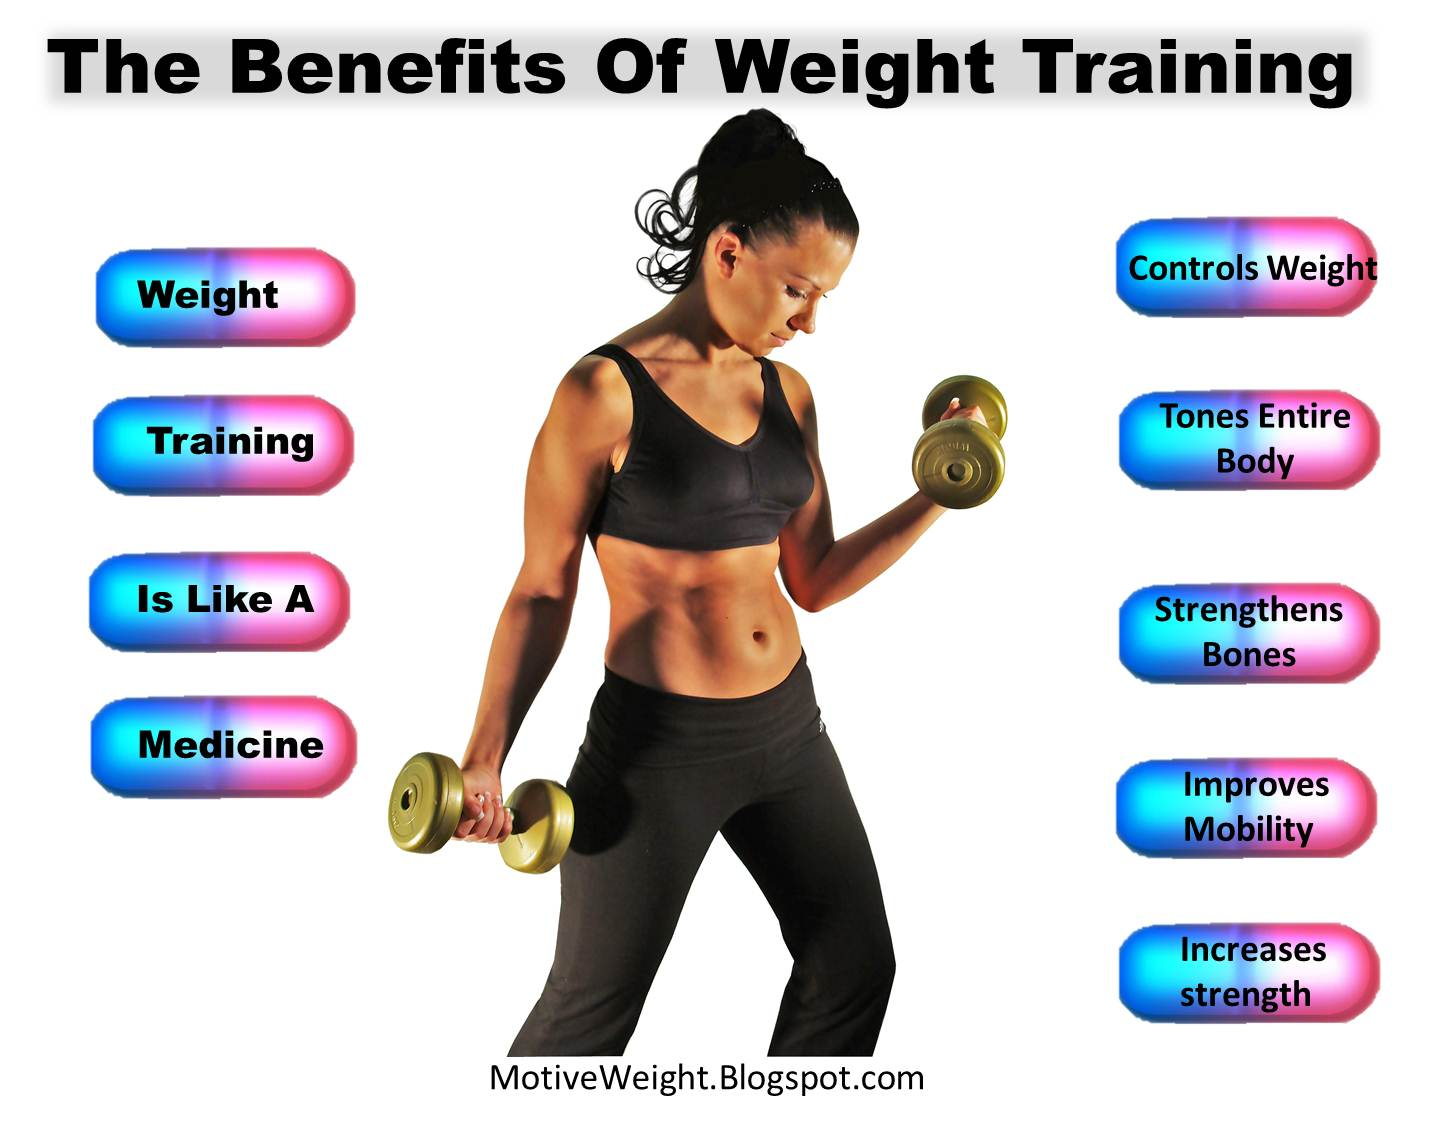 Benefits of Weight Training for Fitness